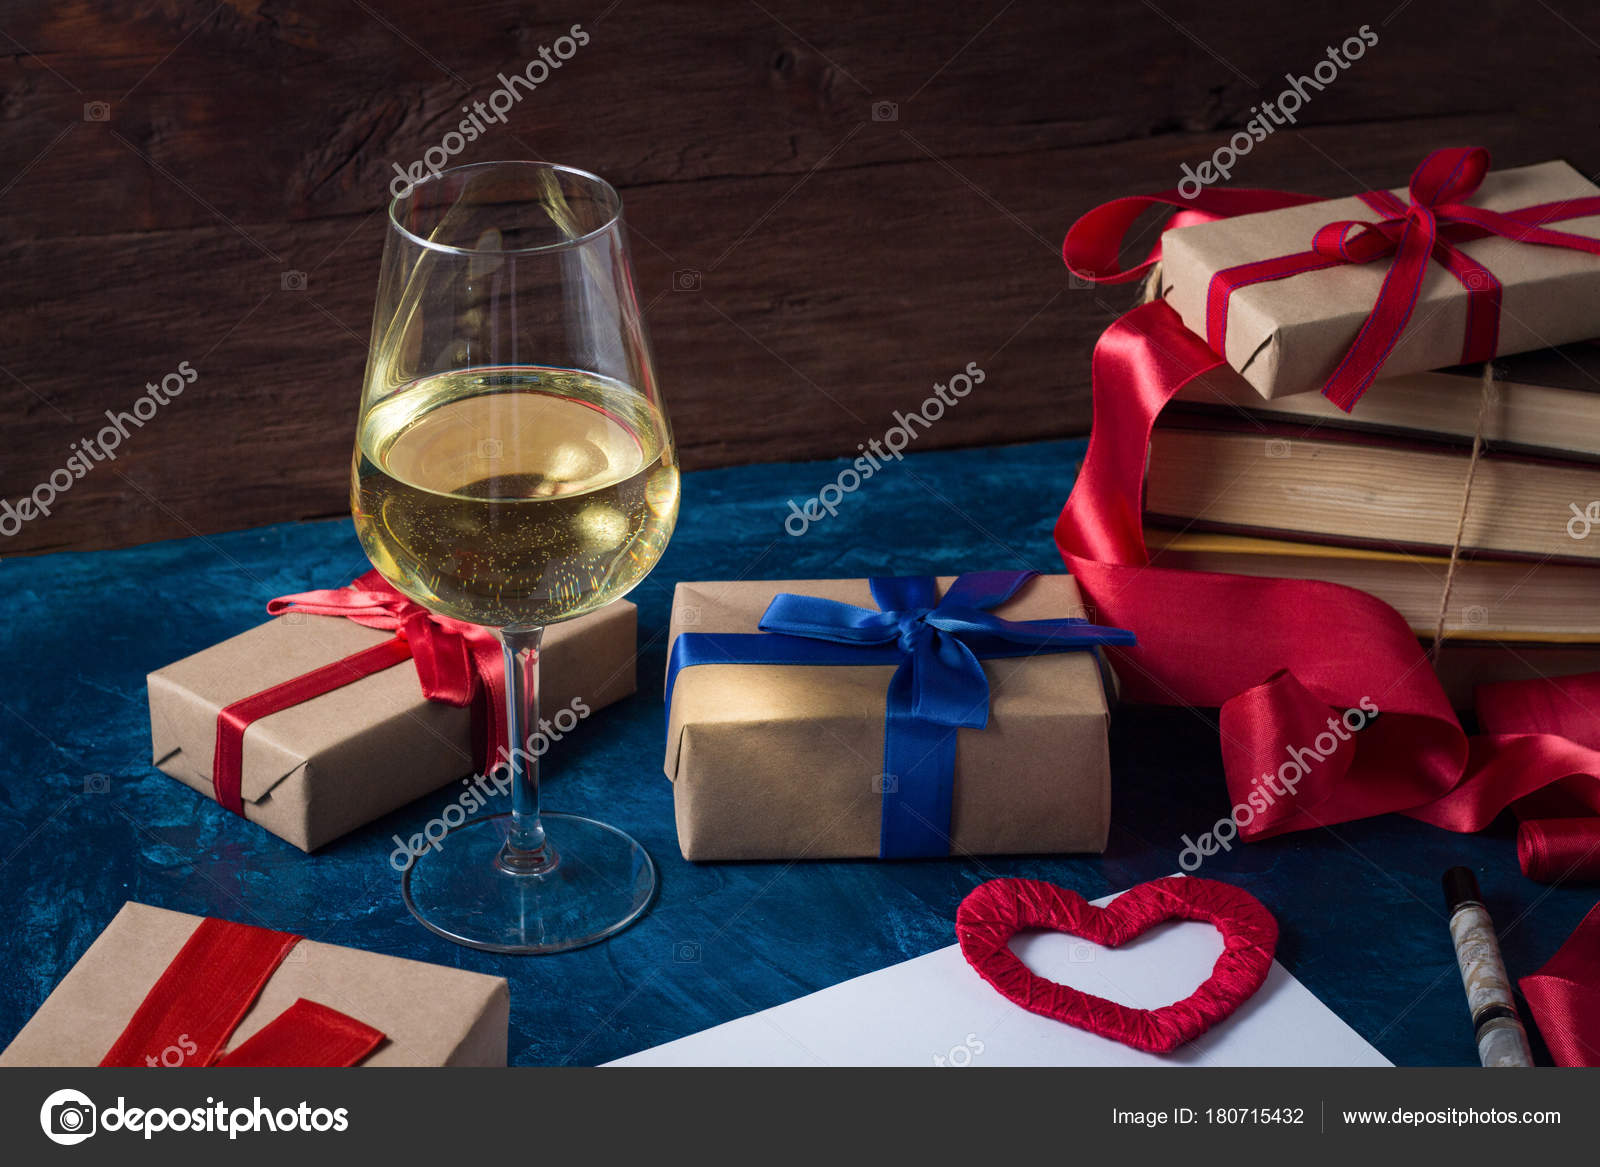 Valentine S Day Wine Glass Packaged Gifts Books Heart And Pu